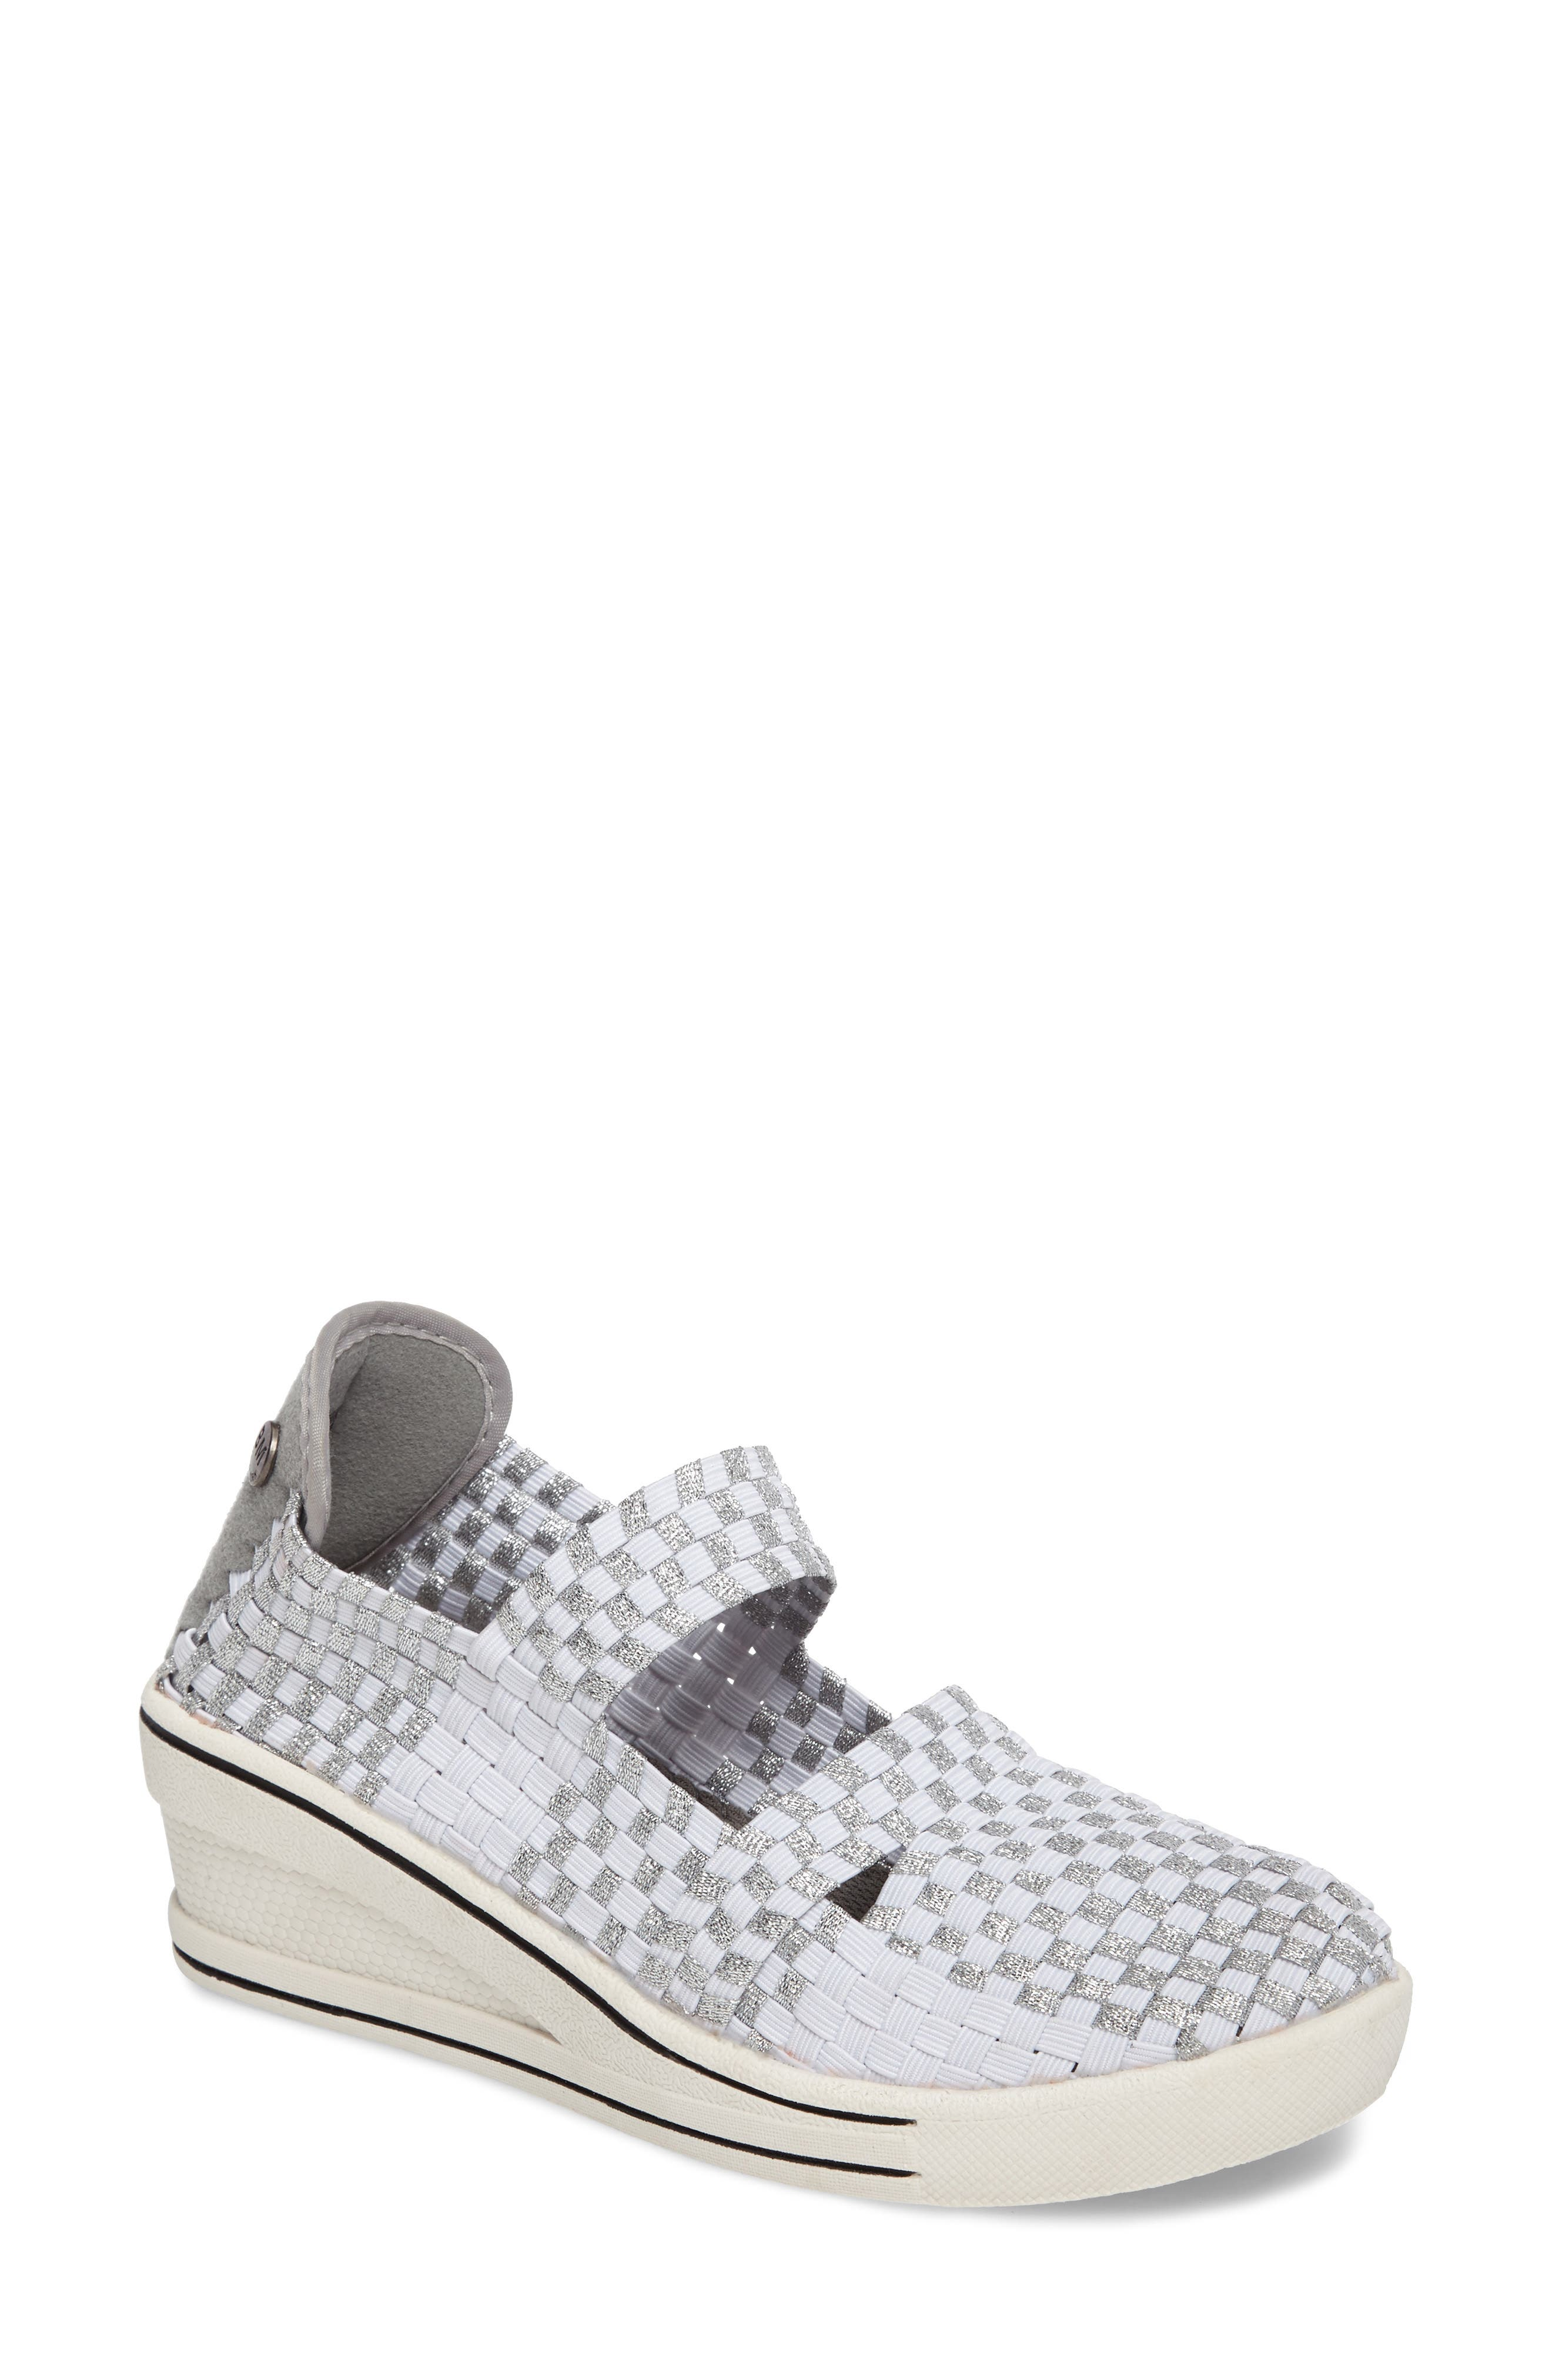 Frontier Woven Mary Jane Wedge,                             Main thumbnail 1, color,                             Metallic White/ Silver Fabric